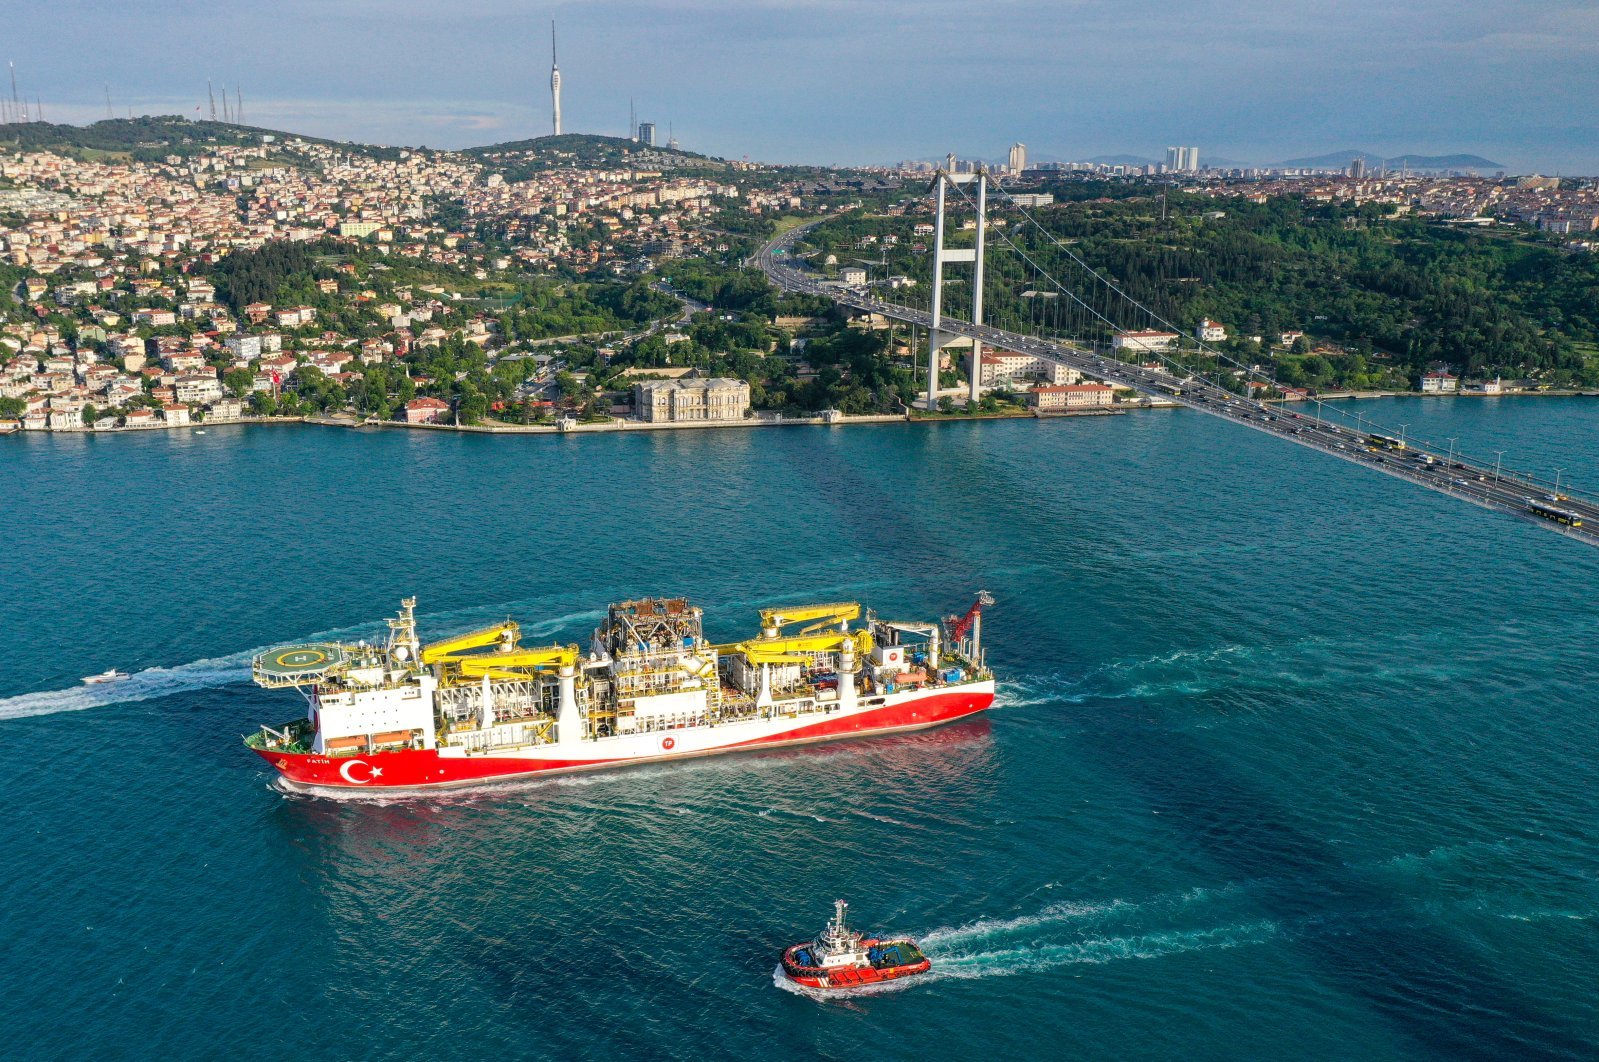 Turkey's first drilling vessel Fatih sails under July 15 Martyrs Bridge, formerly known as the Bosporus Bridge, as it leaves for the Black Sea, Istanbul, Turkey, May 29, 2020. (AA Photo)